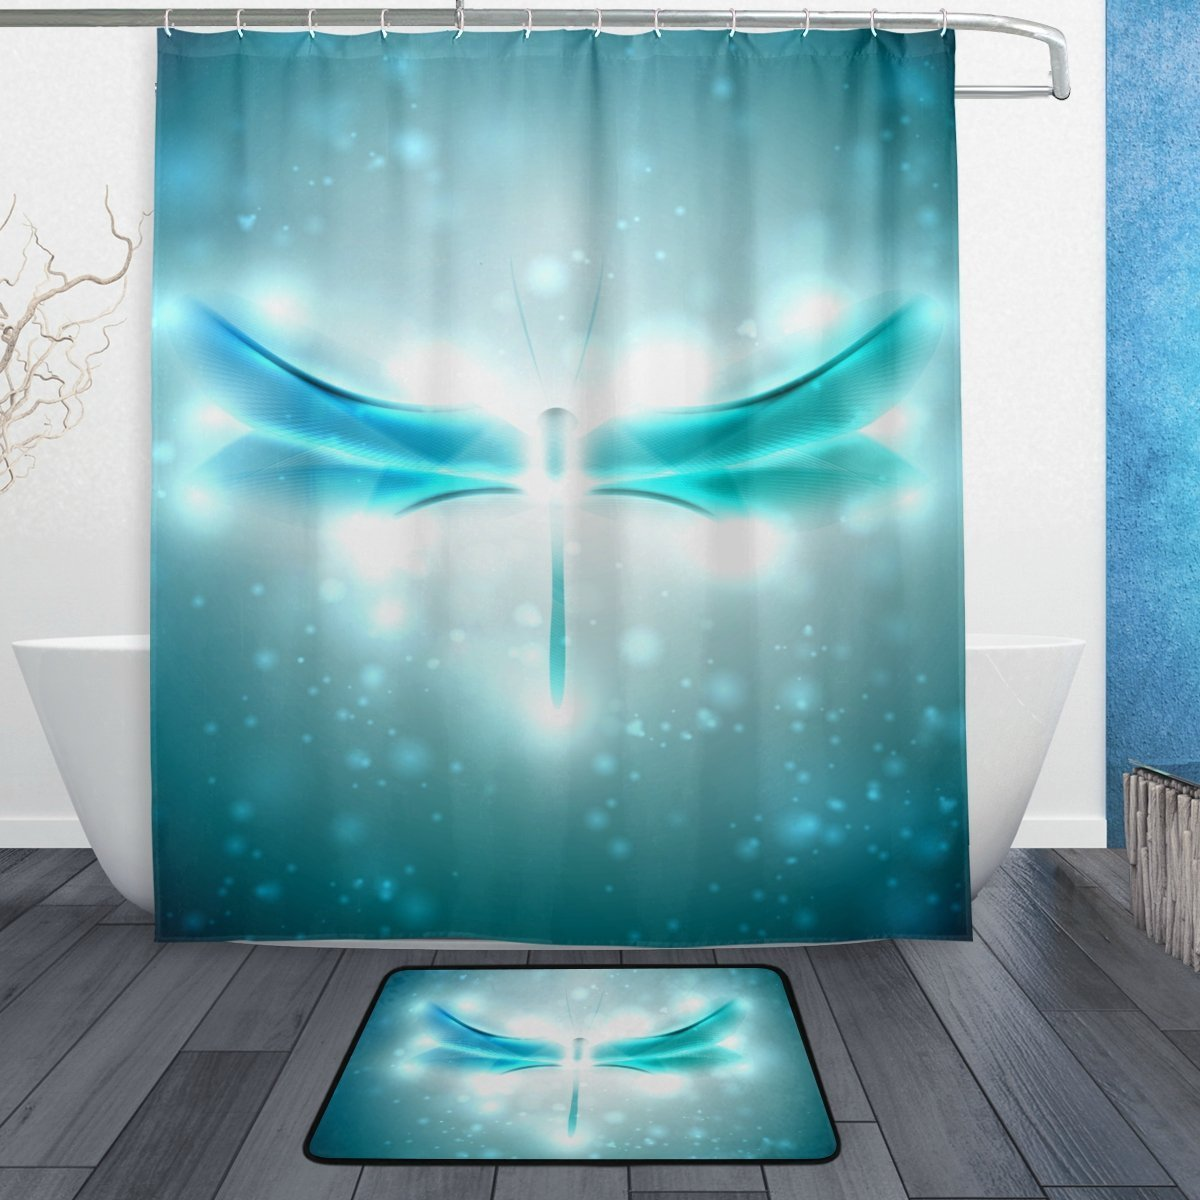 BAIHUISHOP Dragonfly 3-Piece Bathroom Set, Machine Washable for Everyday Use,Includes 60x72 Inch Waterproof Shower Curtain, 12 Shower Hooks and 1 Non-slip Bathroom Rug Carpet - Set of 3